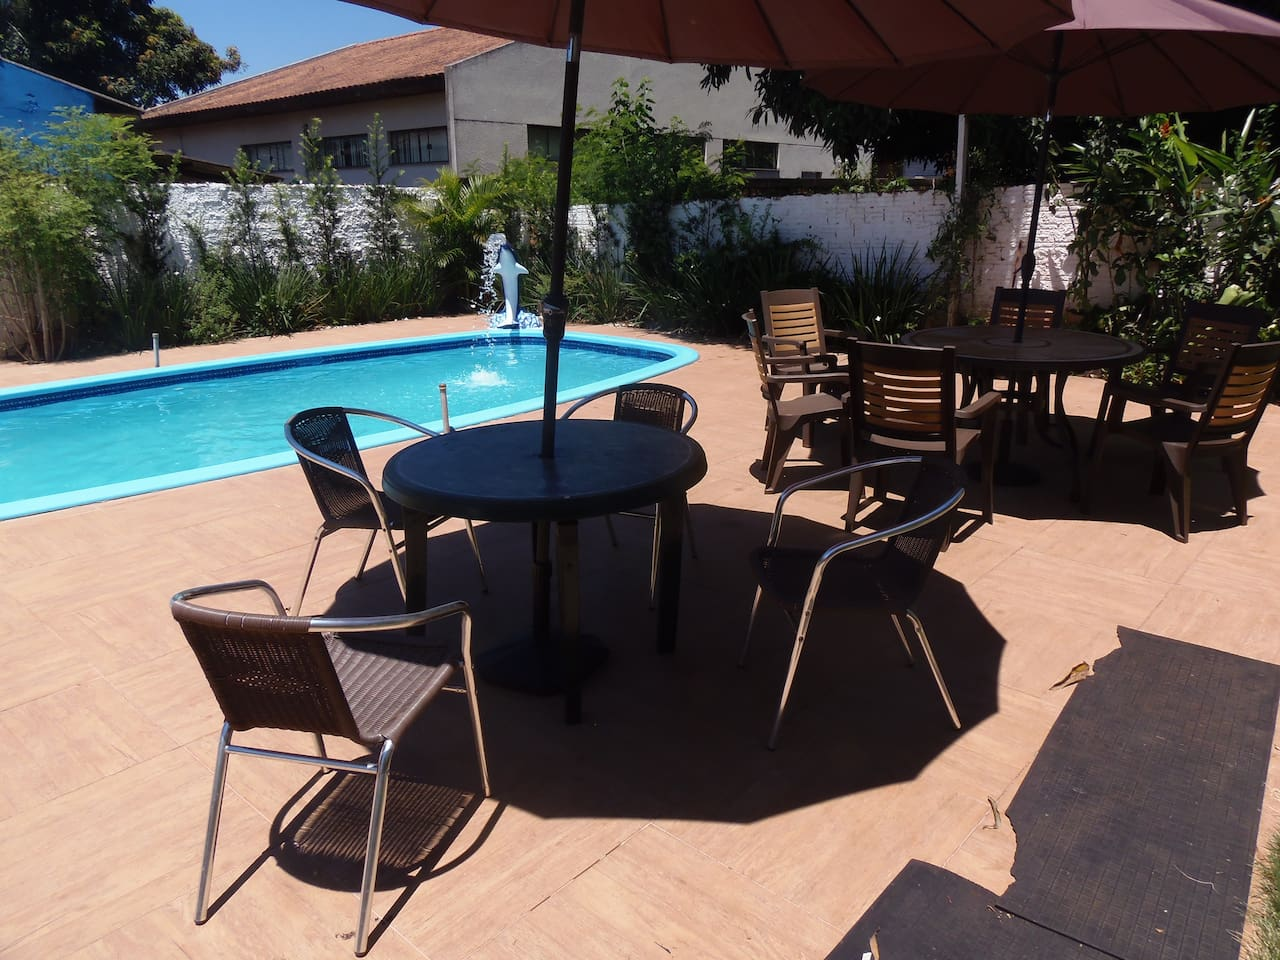 Our beautiful on a sunny day! The pool with the outdoor tables, sun umbrellas and the power Dolphin!